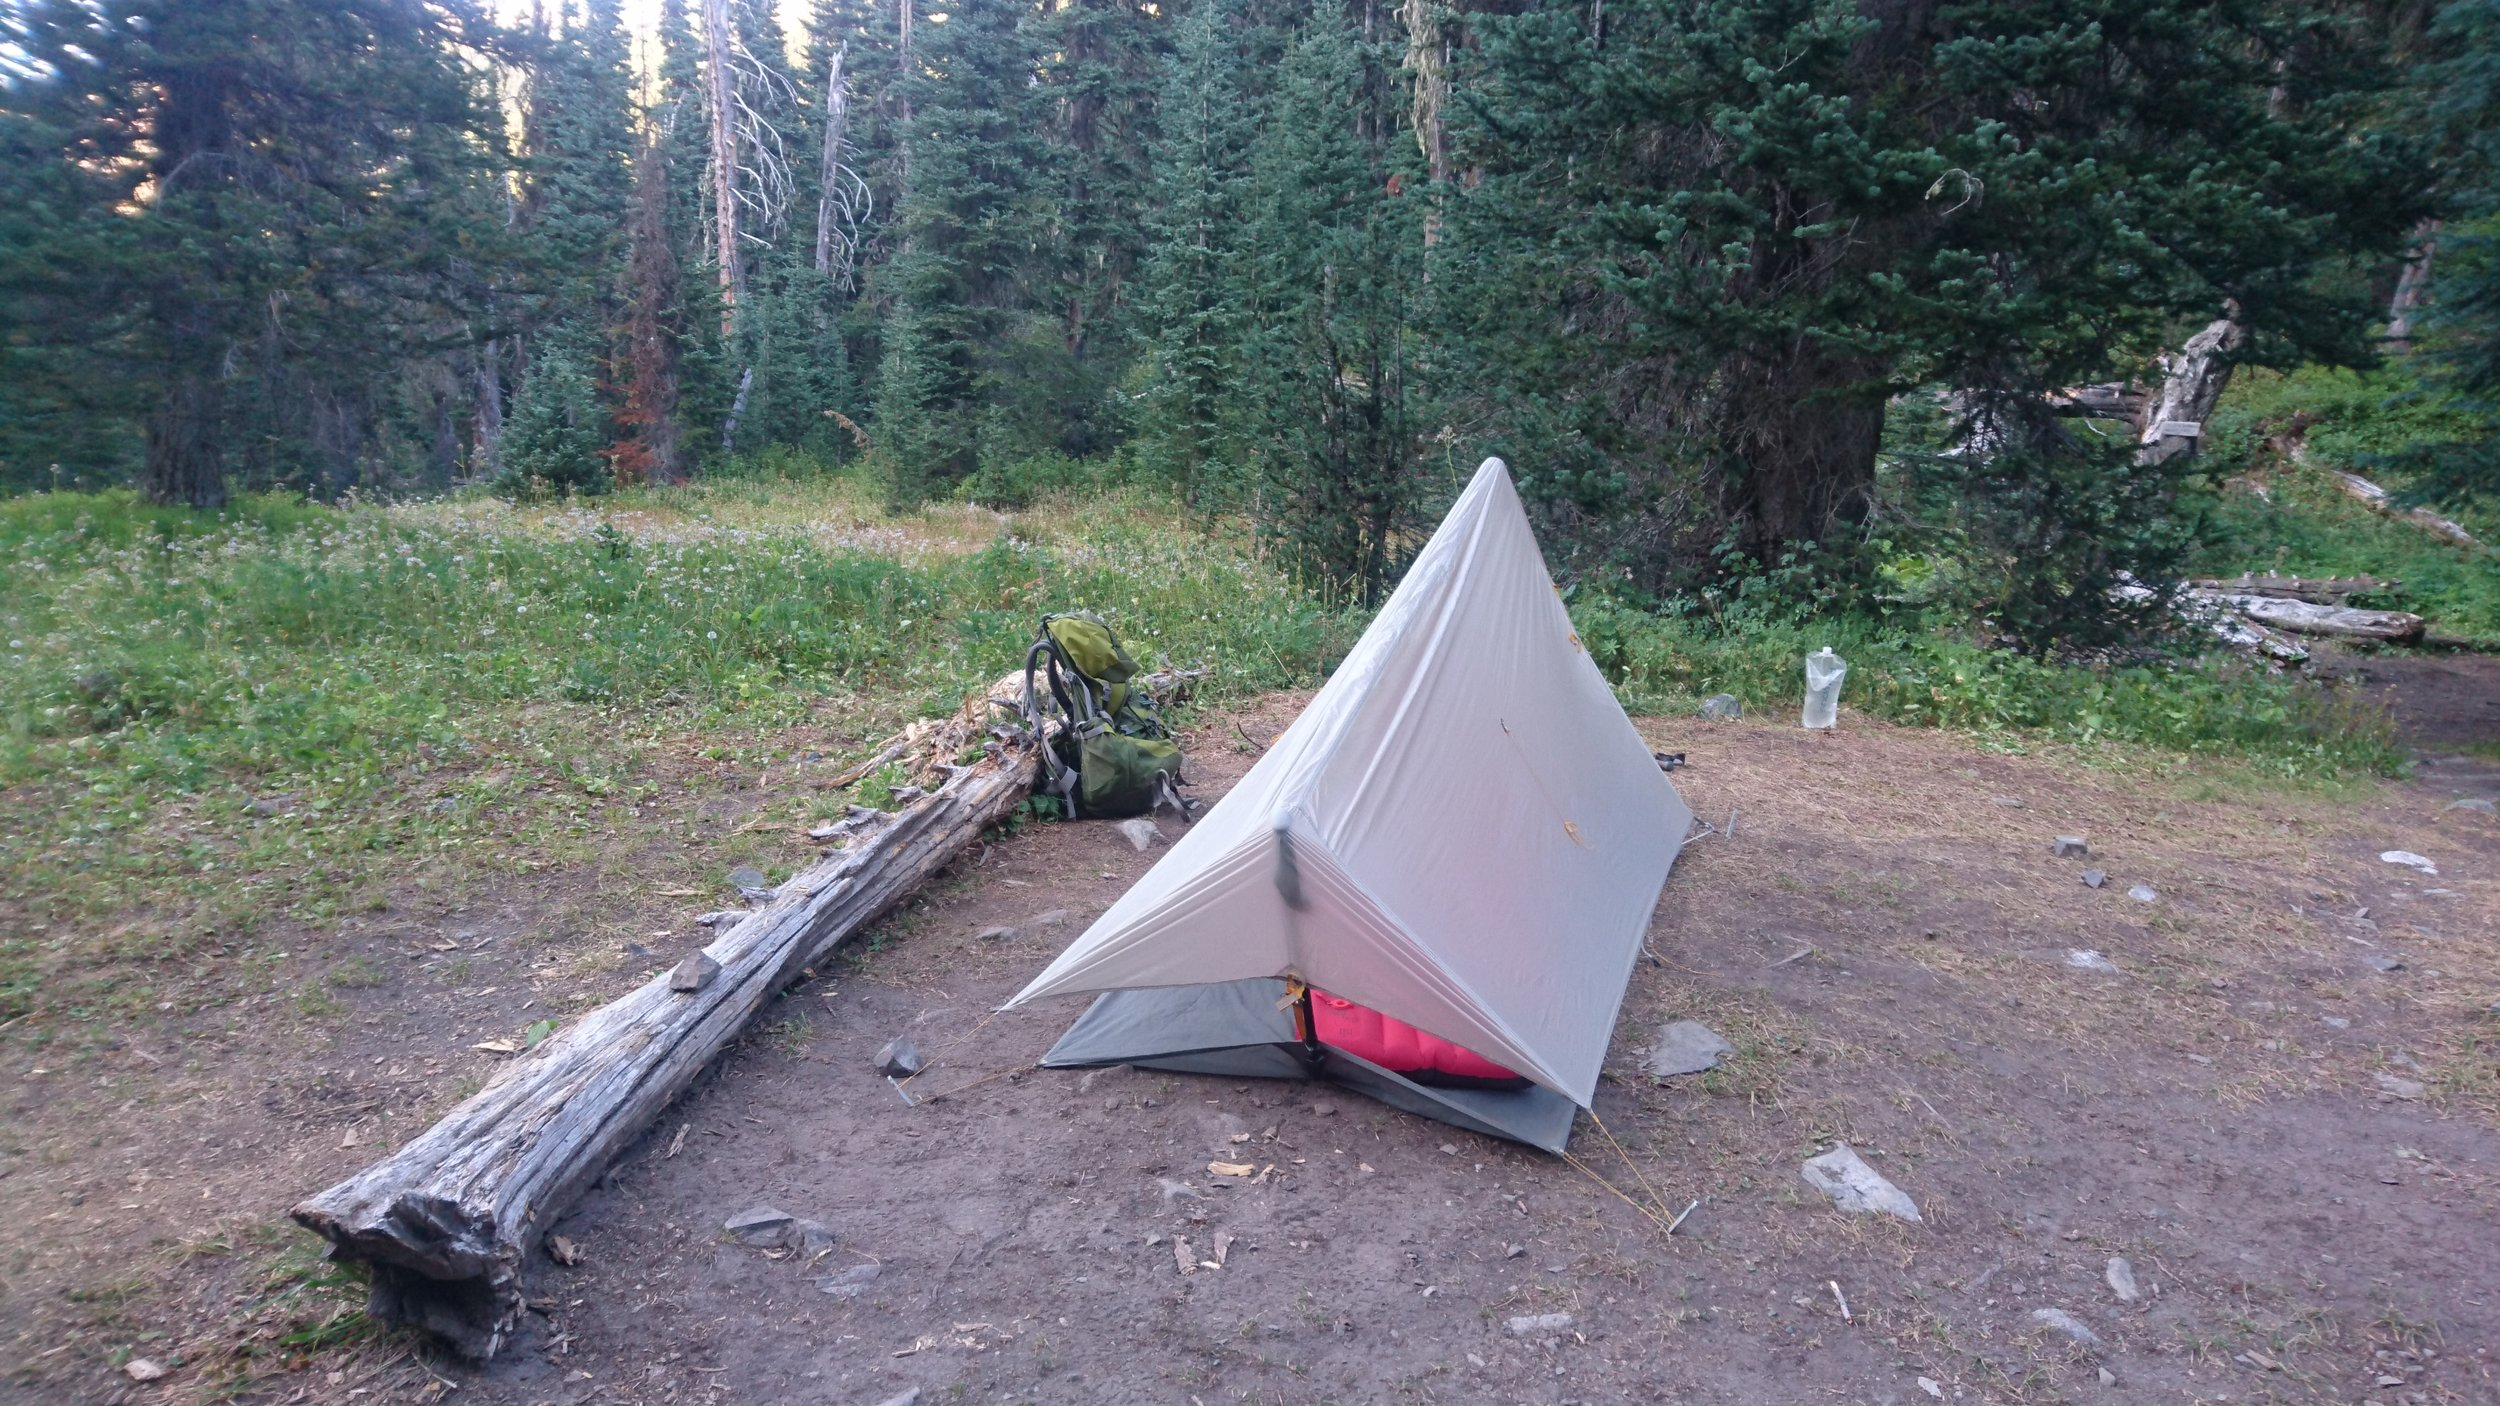 I had just brought my rainfly as shelter and staked it up with my stakes and trekkingpoles. It worked out excellently! Versatile Agnes!